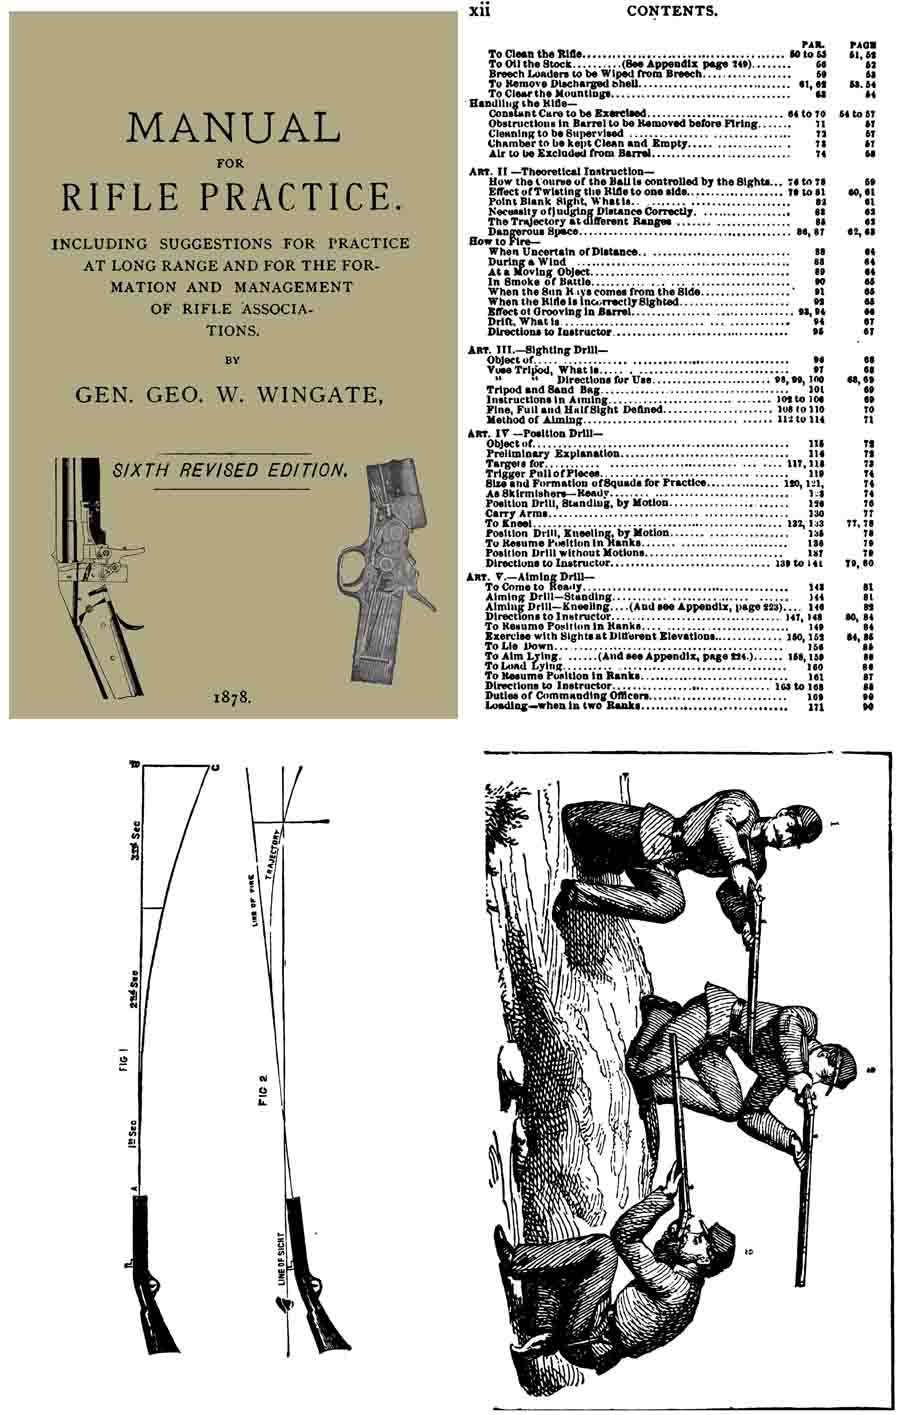 Cornell Publications Llc Links To Remington Catalog Reprints Fotos 1187 Diagram Http Www Gun Parts Com Remingtonshotgun Sharps Peabody Springfield